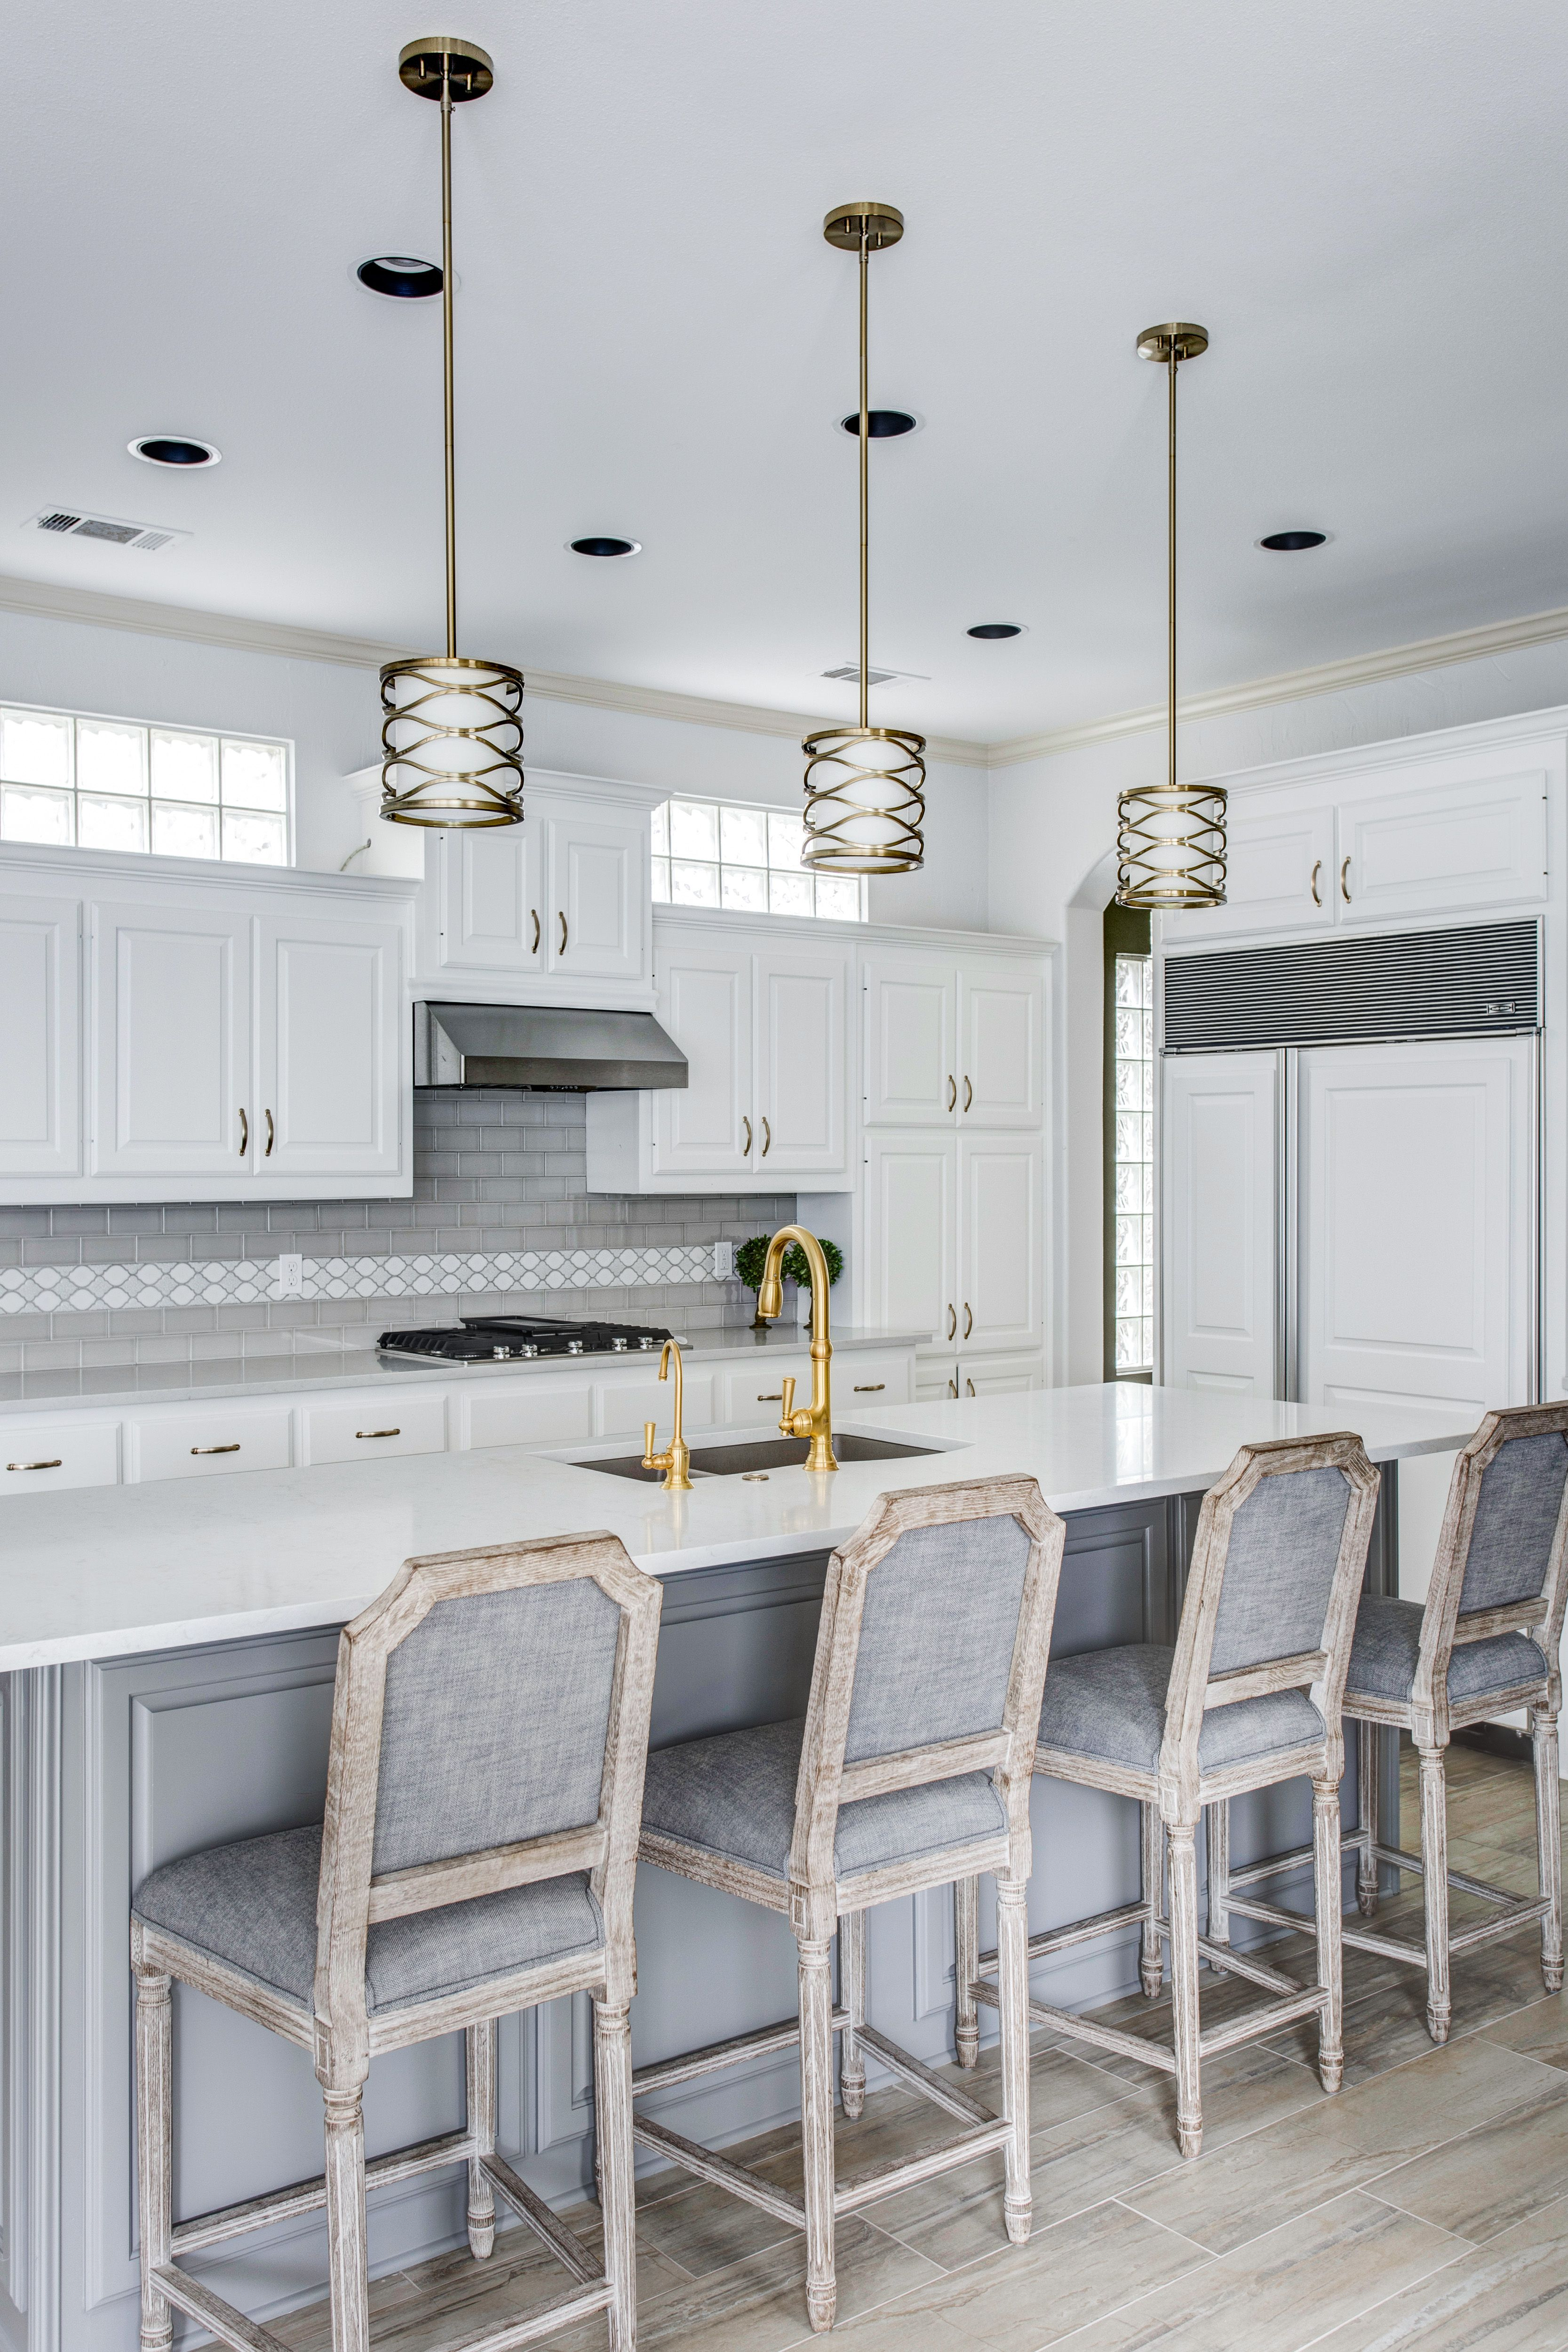 White Cabinets With Grey Subway Tile And A Decorative Glass